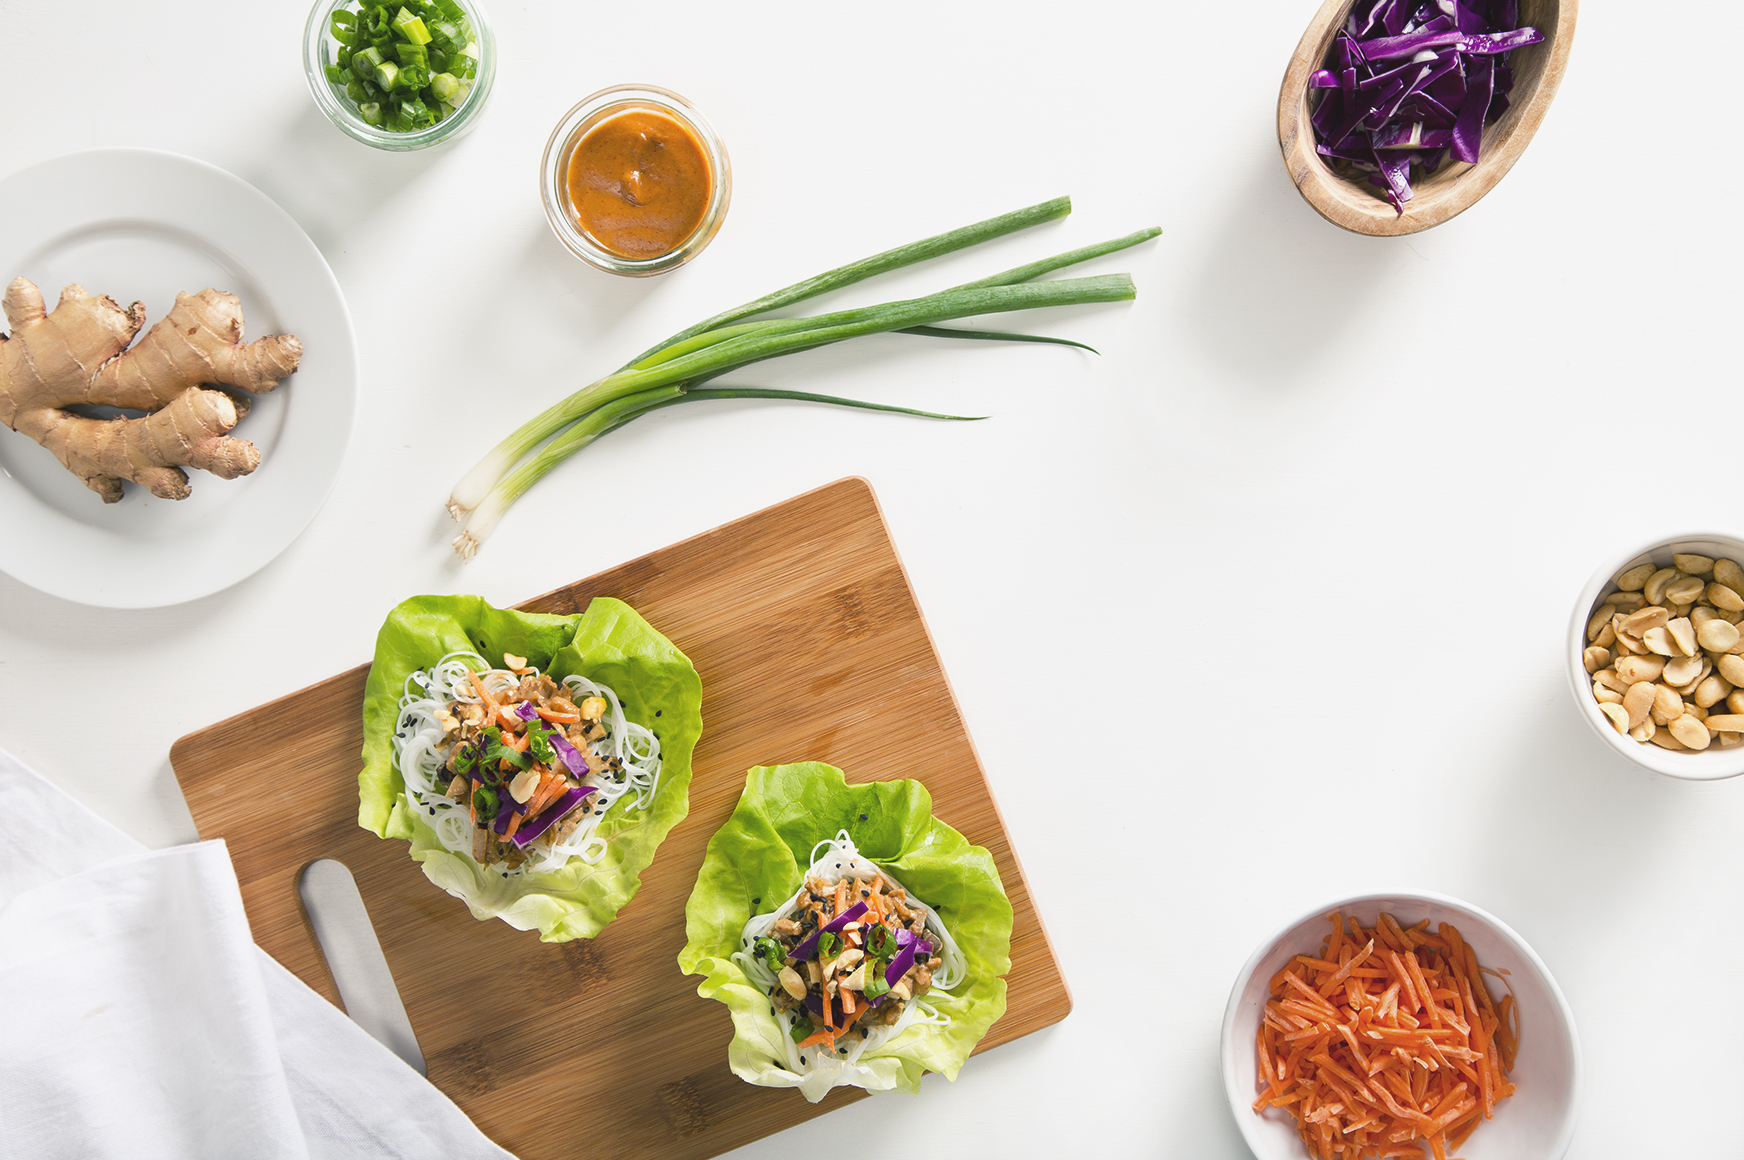 30-Minute Vegetarian Thai Lettuce Wraps with Peanut Sauce! (Vegan with a Gluten-Free Option) | picklesnhoney.com #vegetarian #vegan #glutenfree #thai #lettuce #wraps #recipe #peanutsauce #tempeh